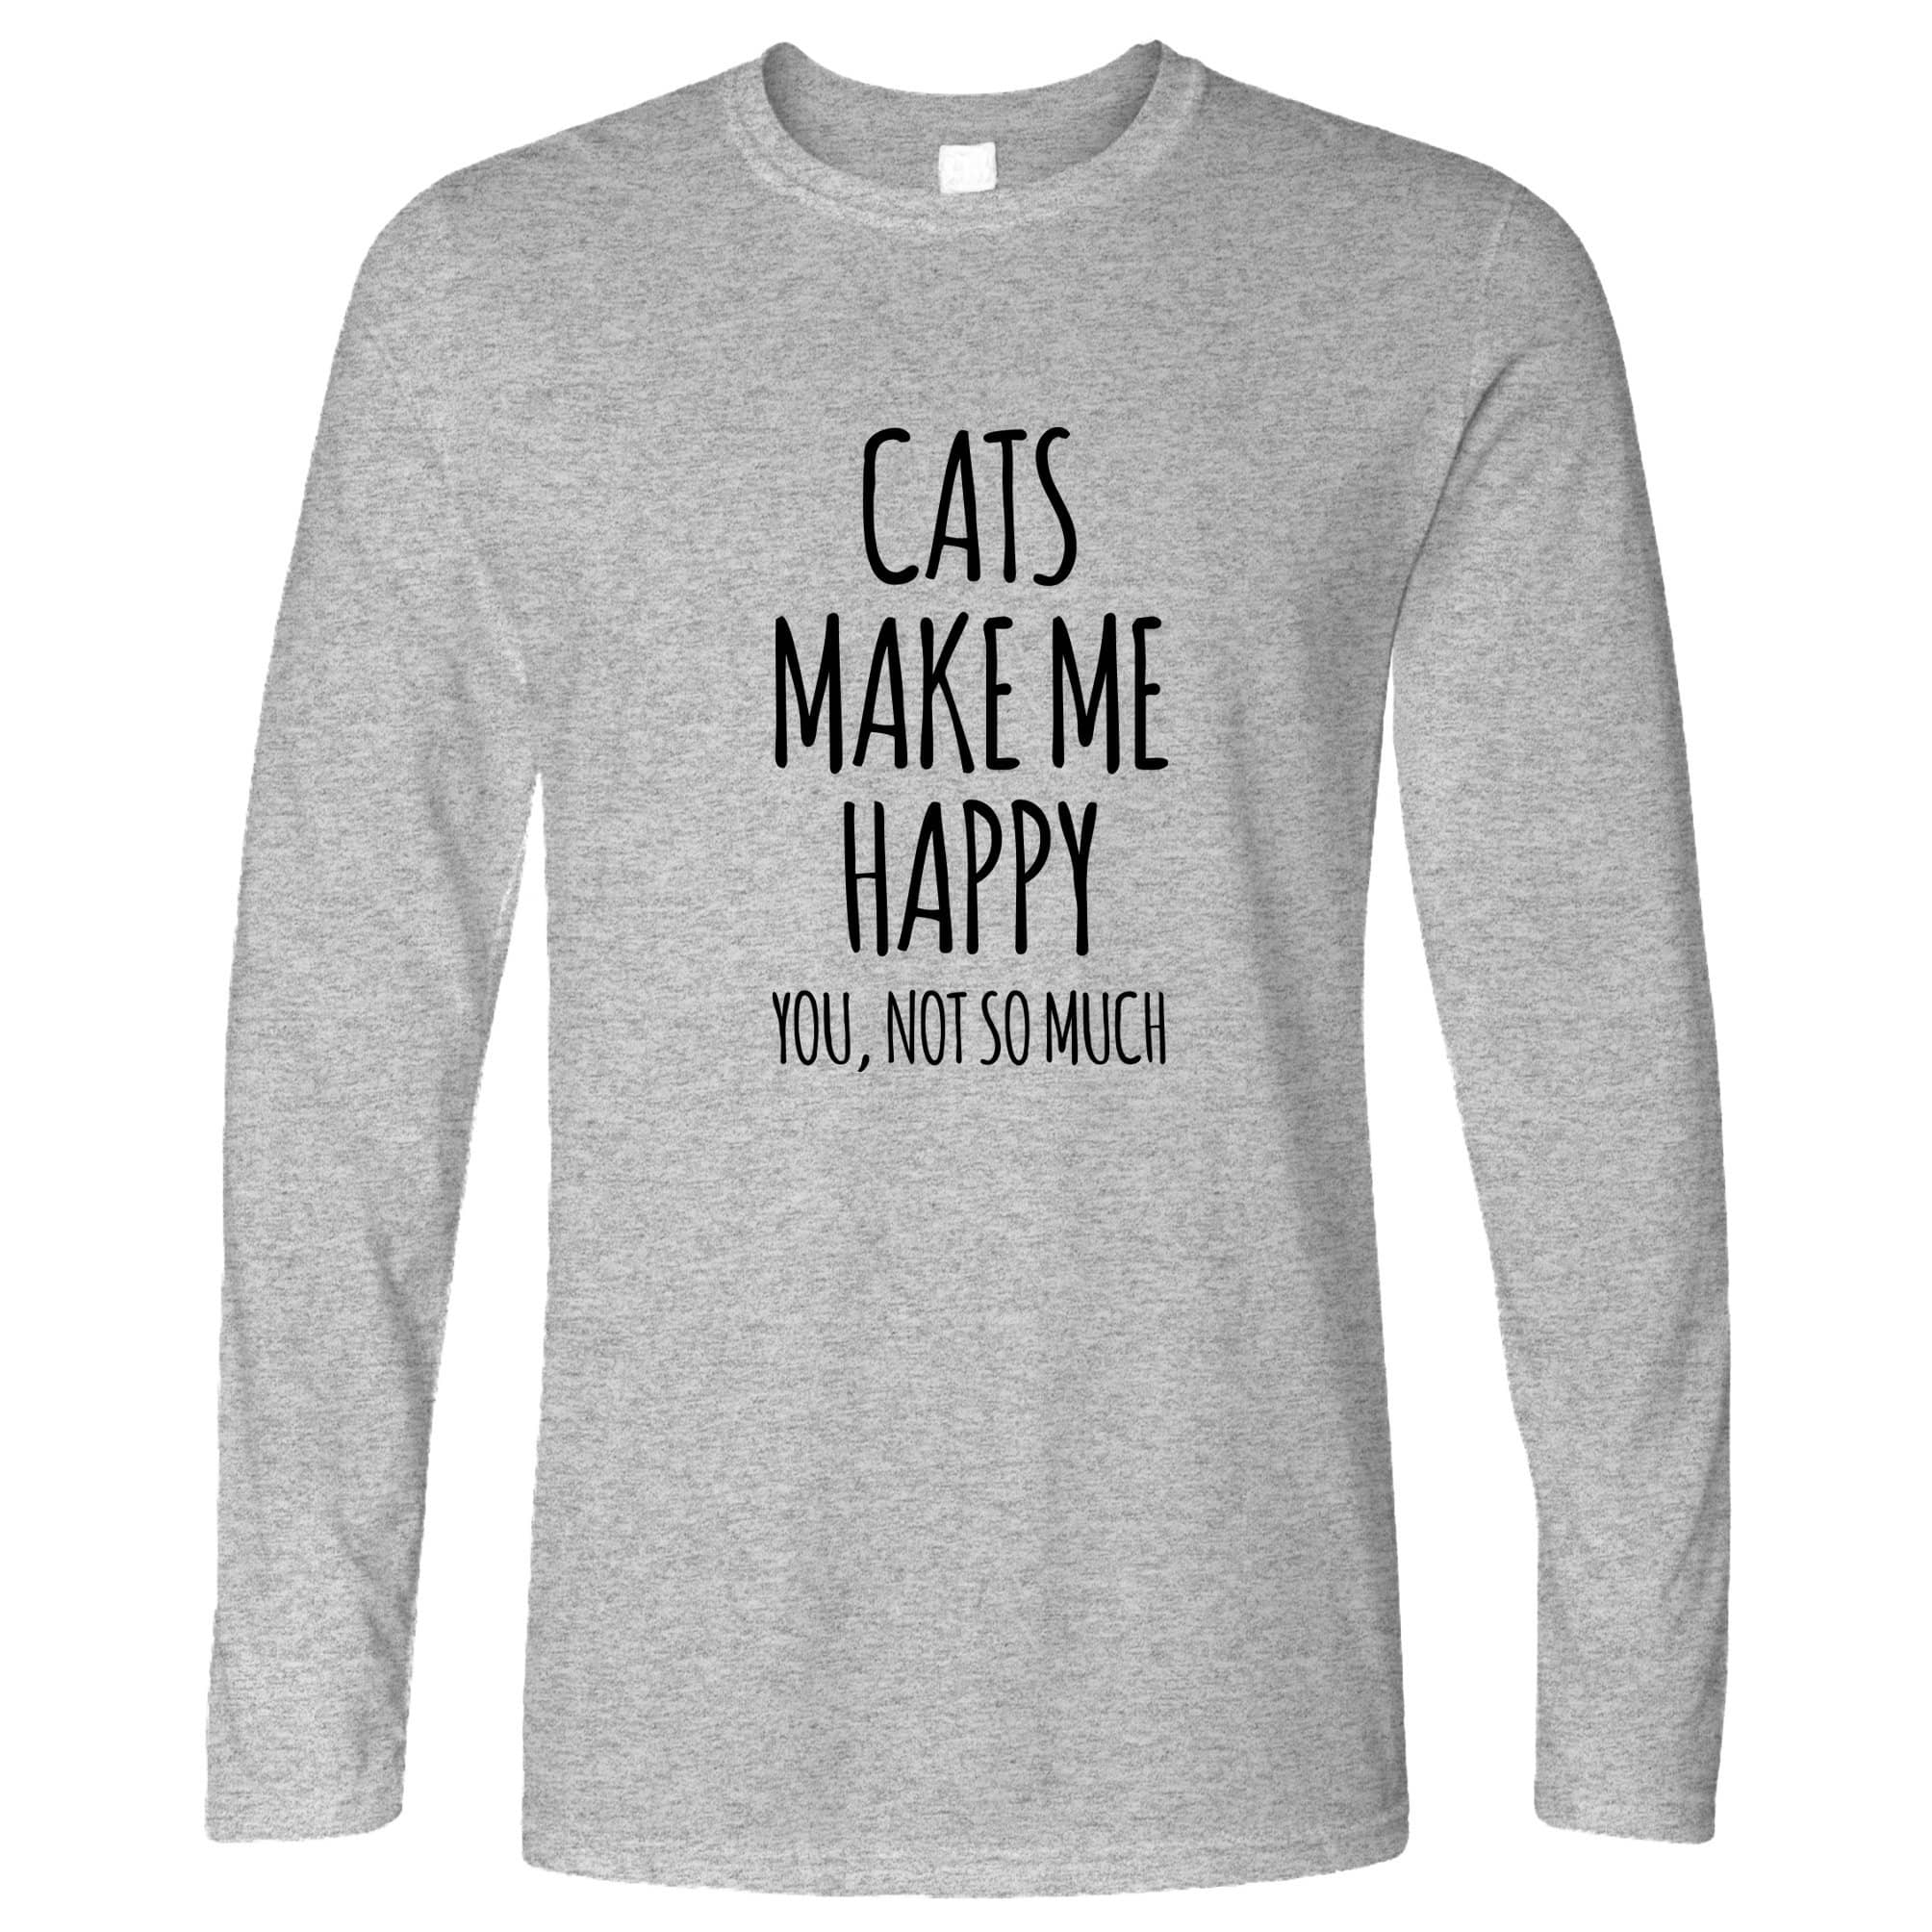 Novelty Long Sleeve Cats Make Me Happy, You, Not So Much T-Shirt